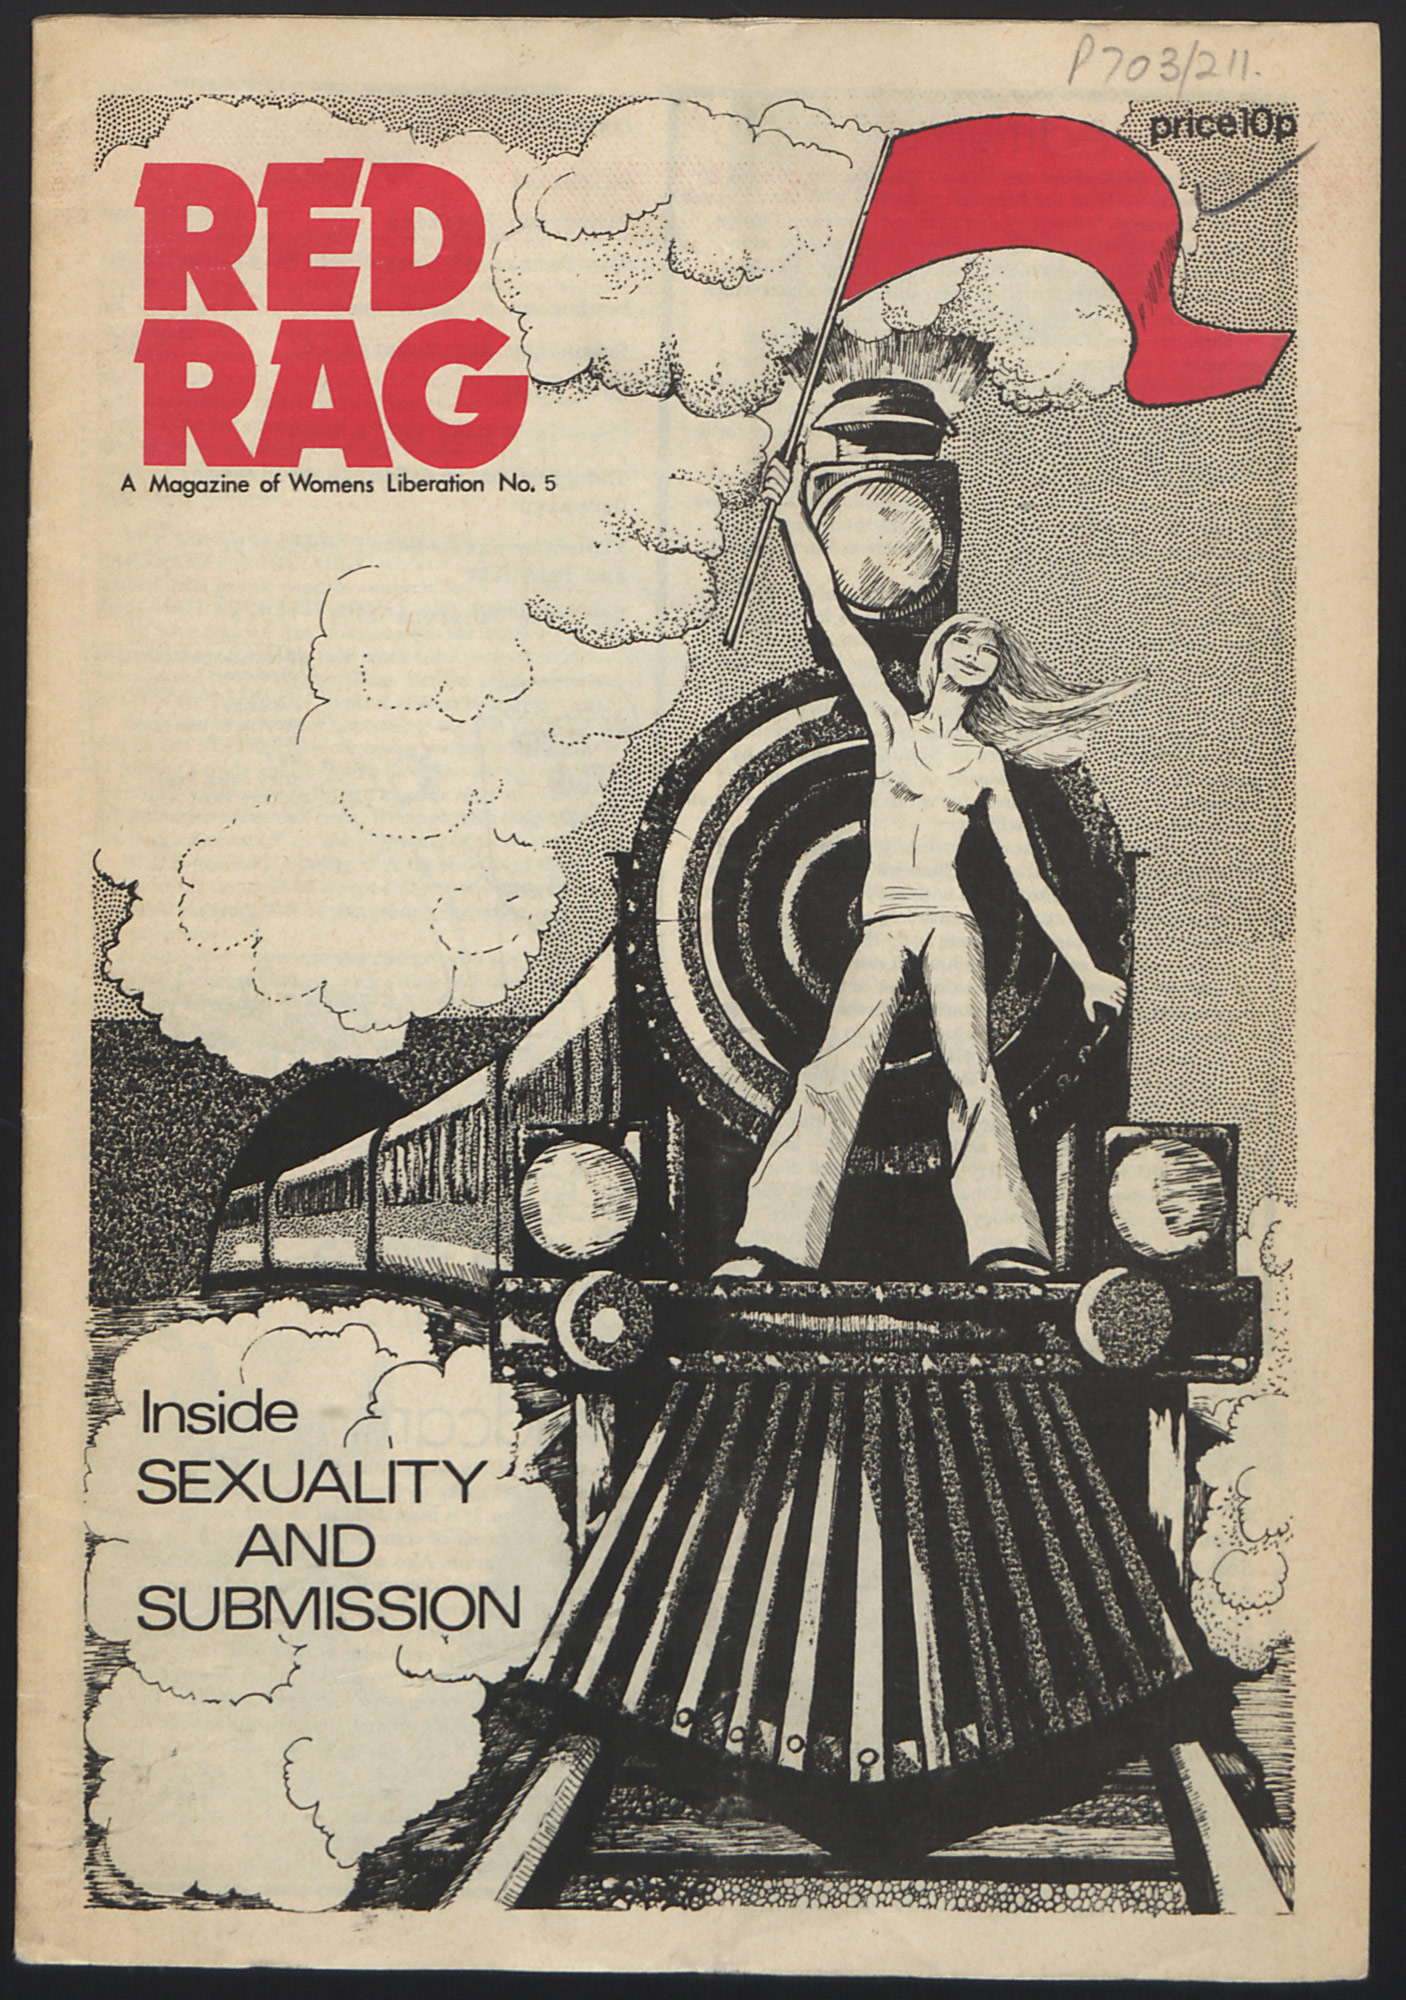 Red Rag magazine 1973 issue 5